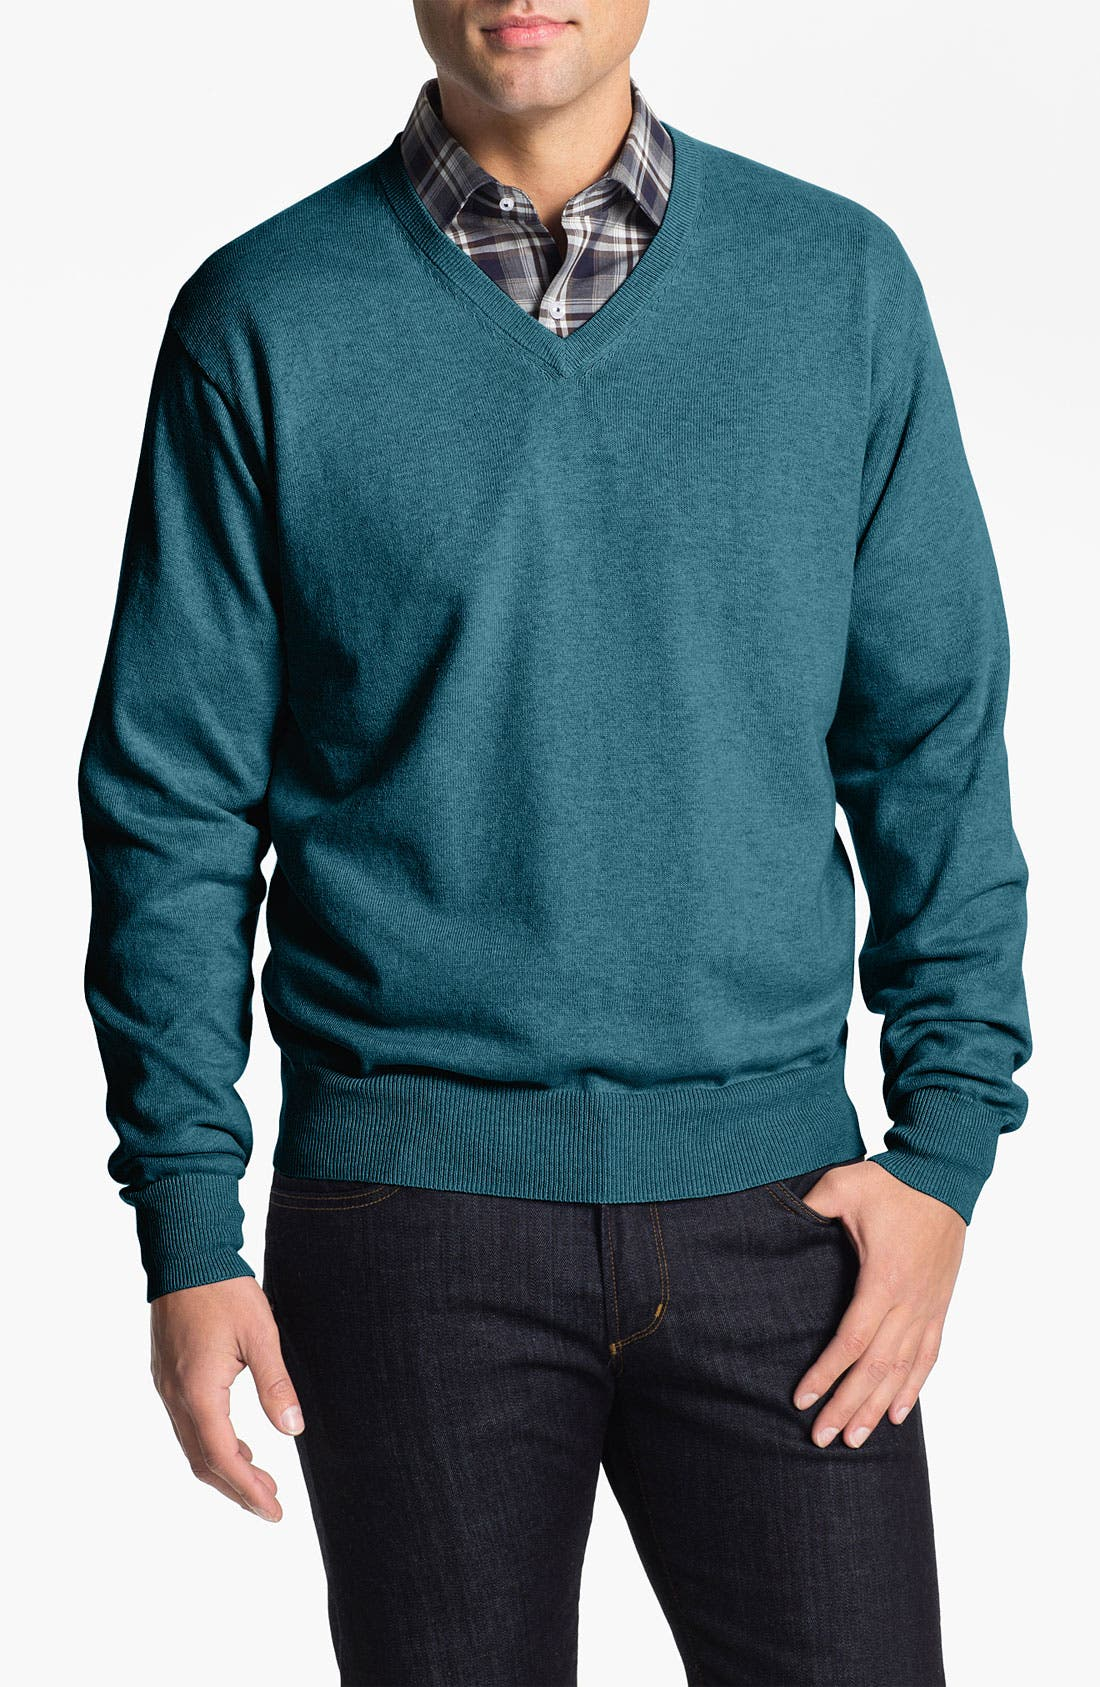 Main Image - Peter Millar Cotton & Cashmere V-Neck Sweater